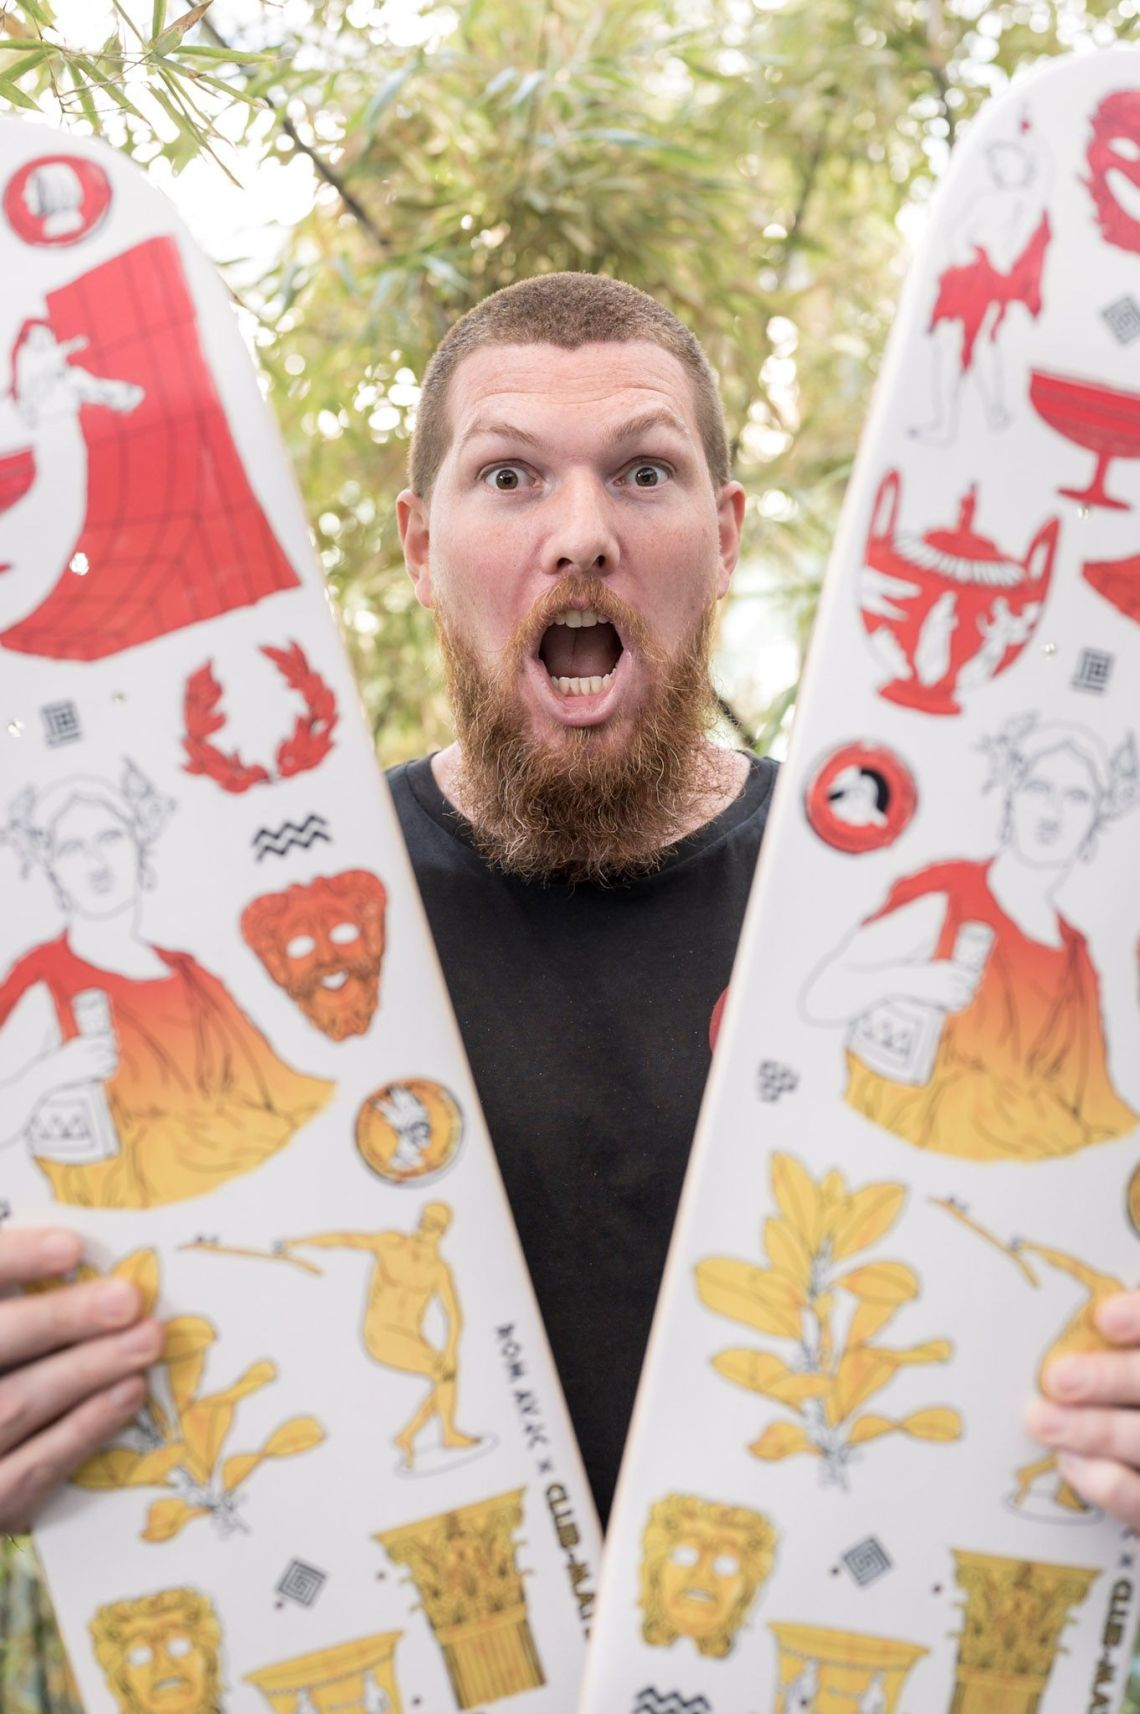 Clubmate X RomAvJC X The Daily Board Skateboard 12